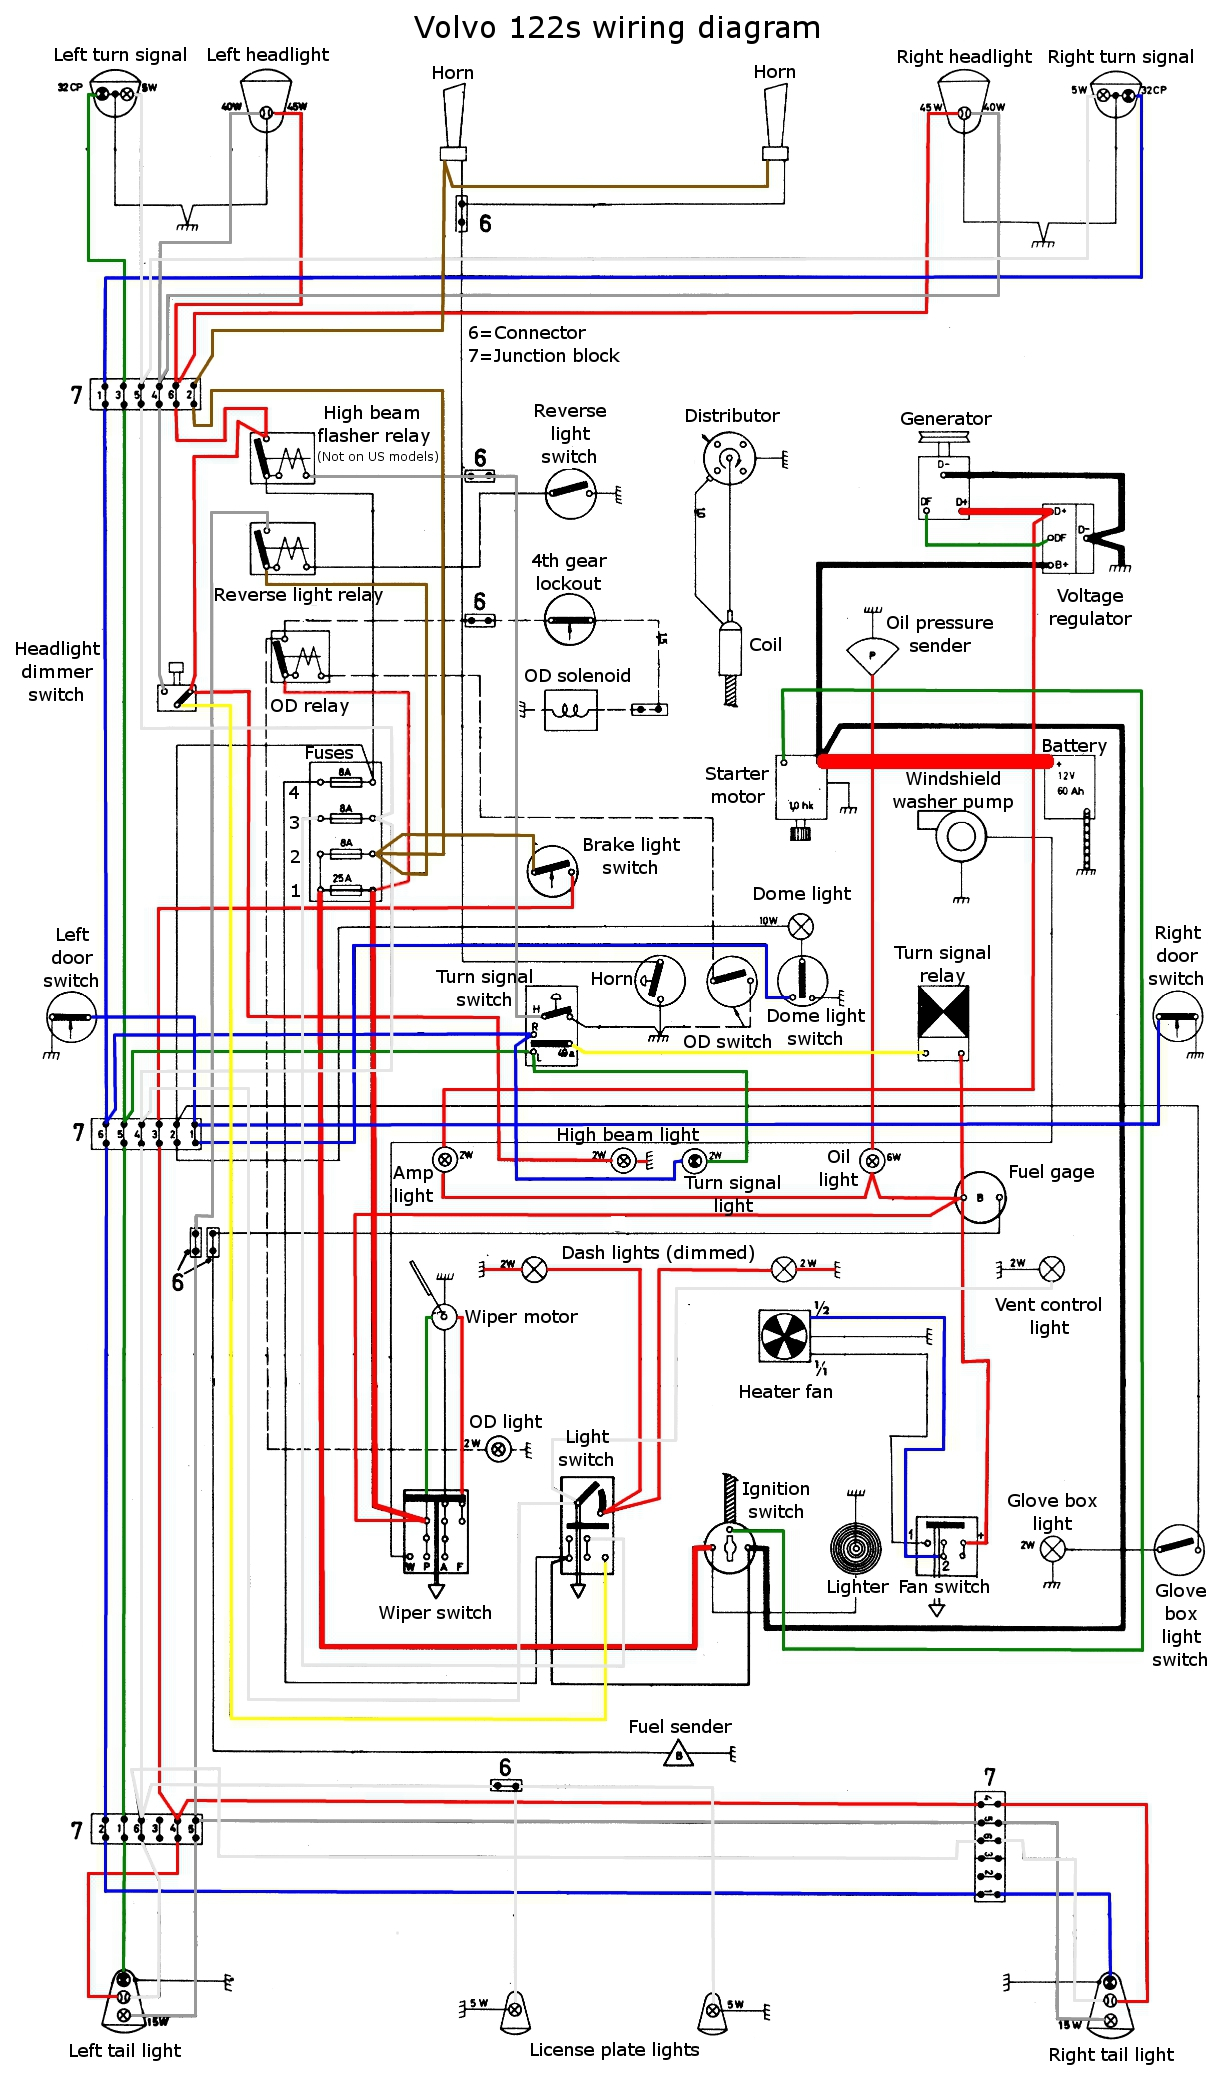 1970 Dodge Truck 2 Headlight Wiring Diagram Download Diagrams 1968 D100 C 10 Get Free Image About